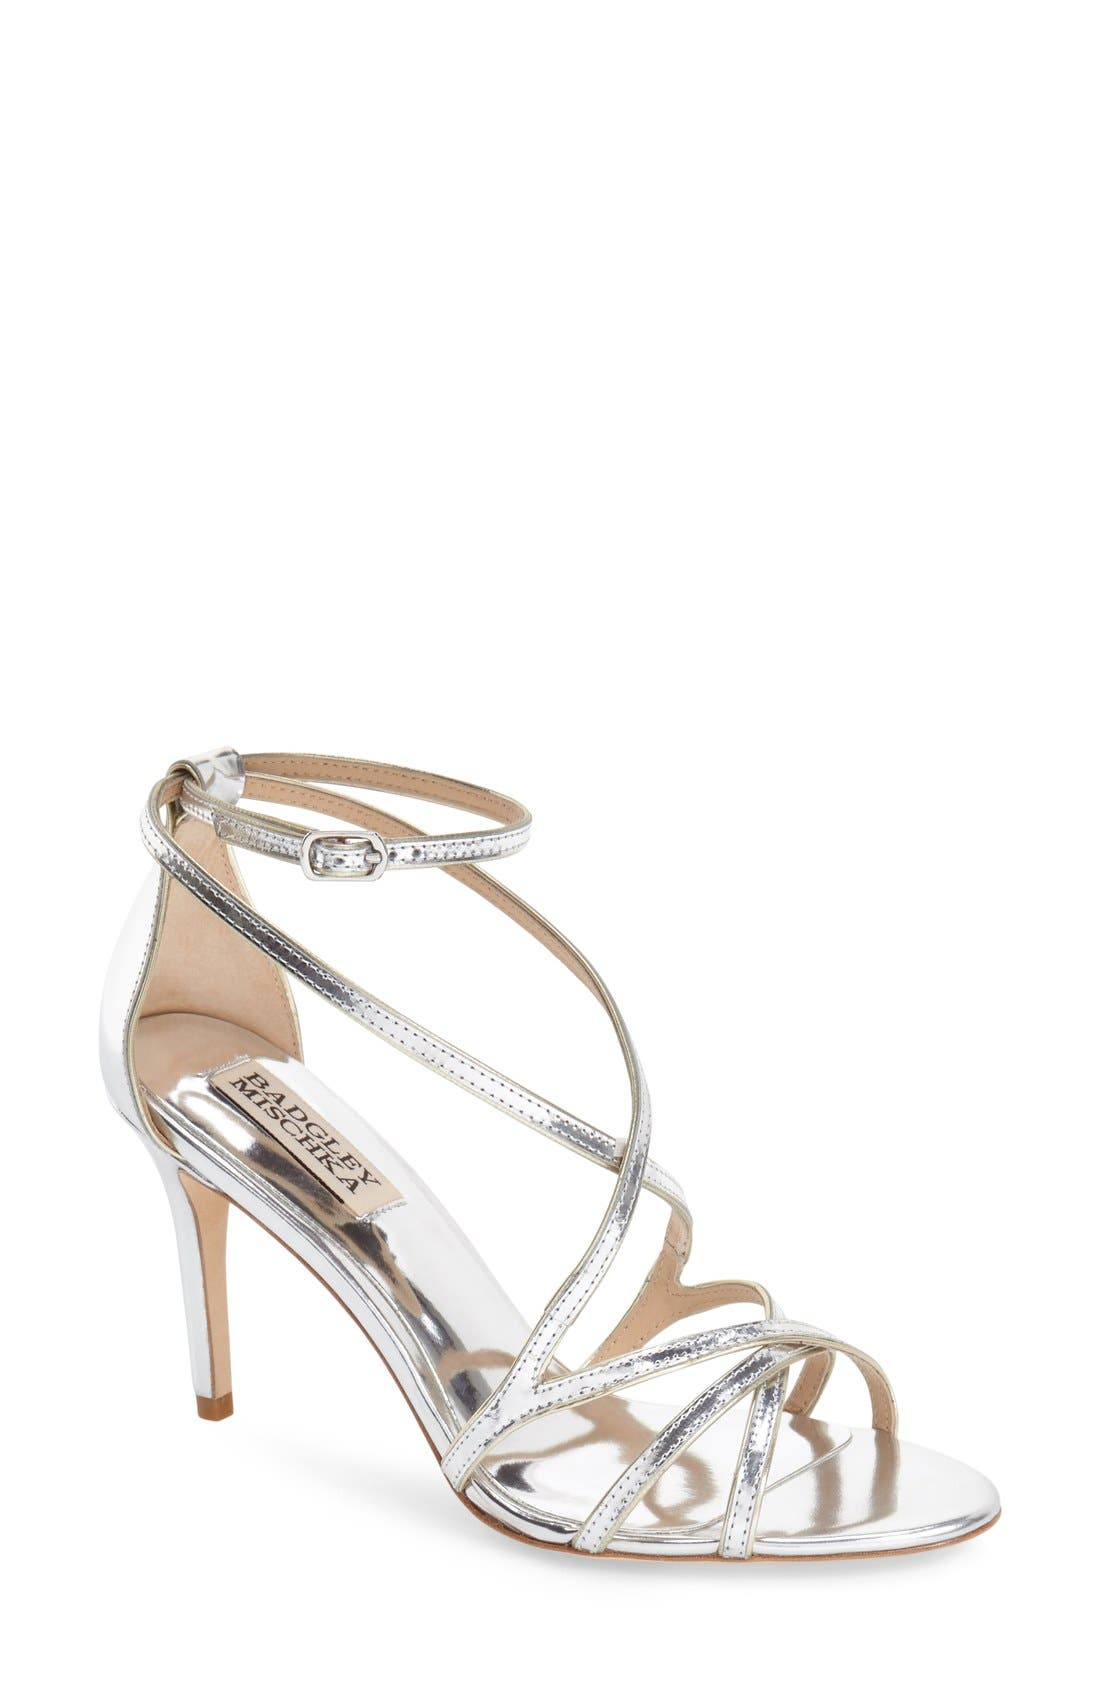 BADGLEY MISCHKA COLLECTION Badgley Mischka 'Lillian' Metallic Evening Sandal, Main, color, 046